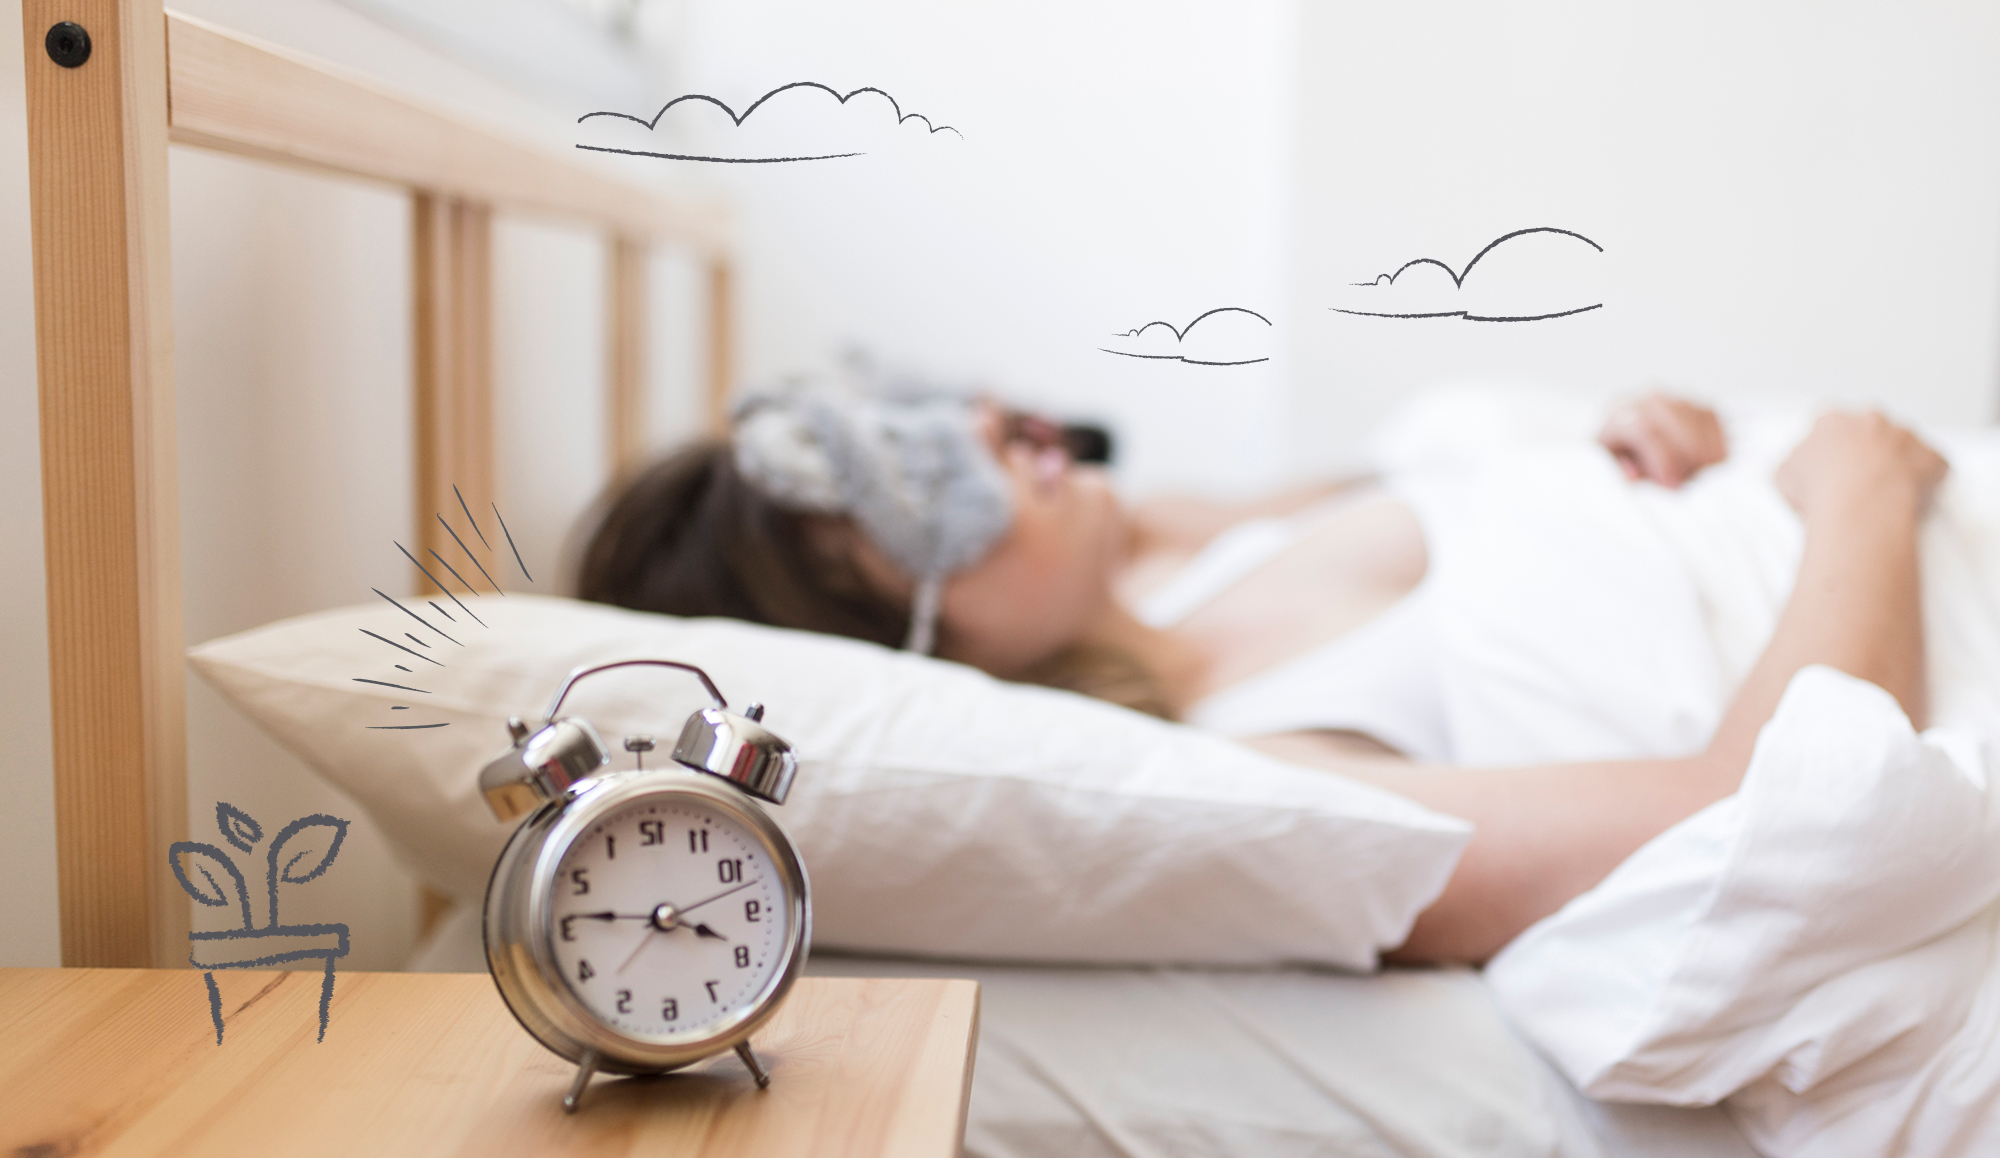 Sleeping disorders or bad habits: know the difference and sleep better